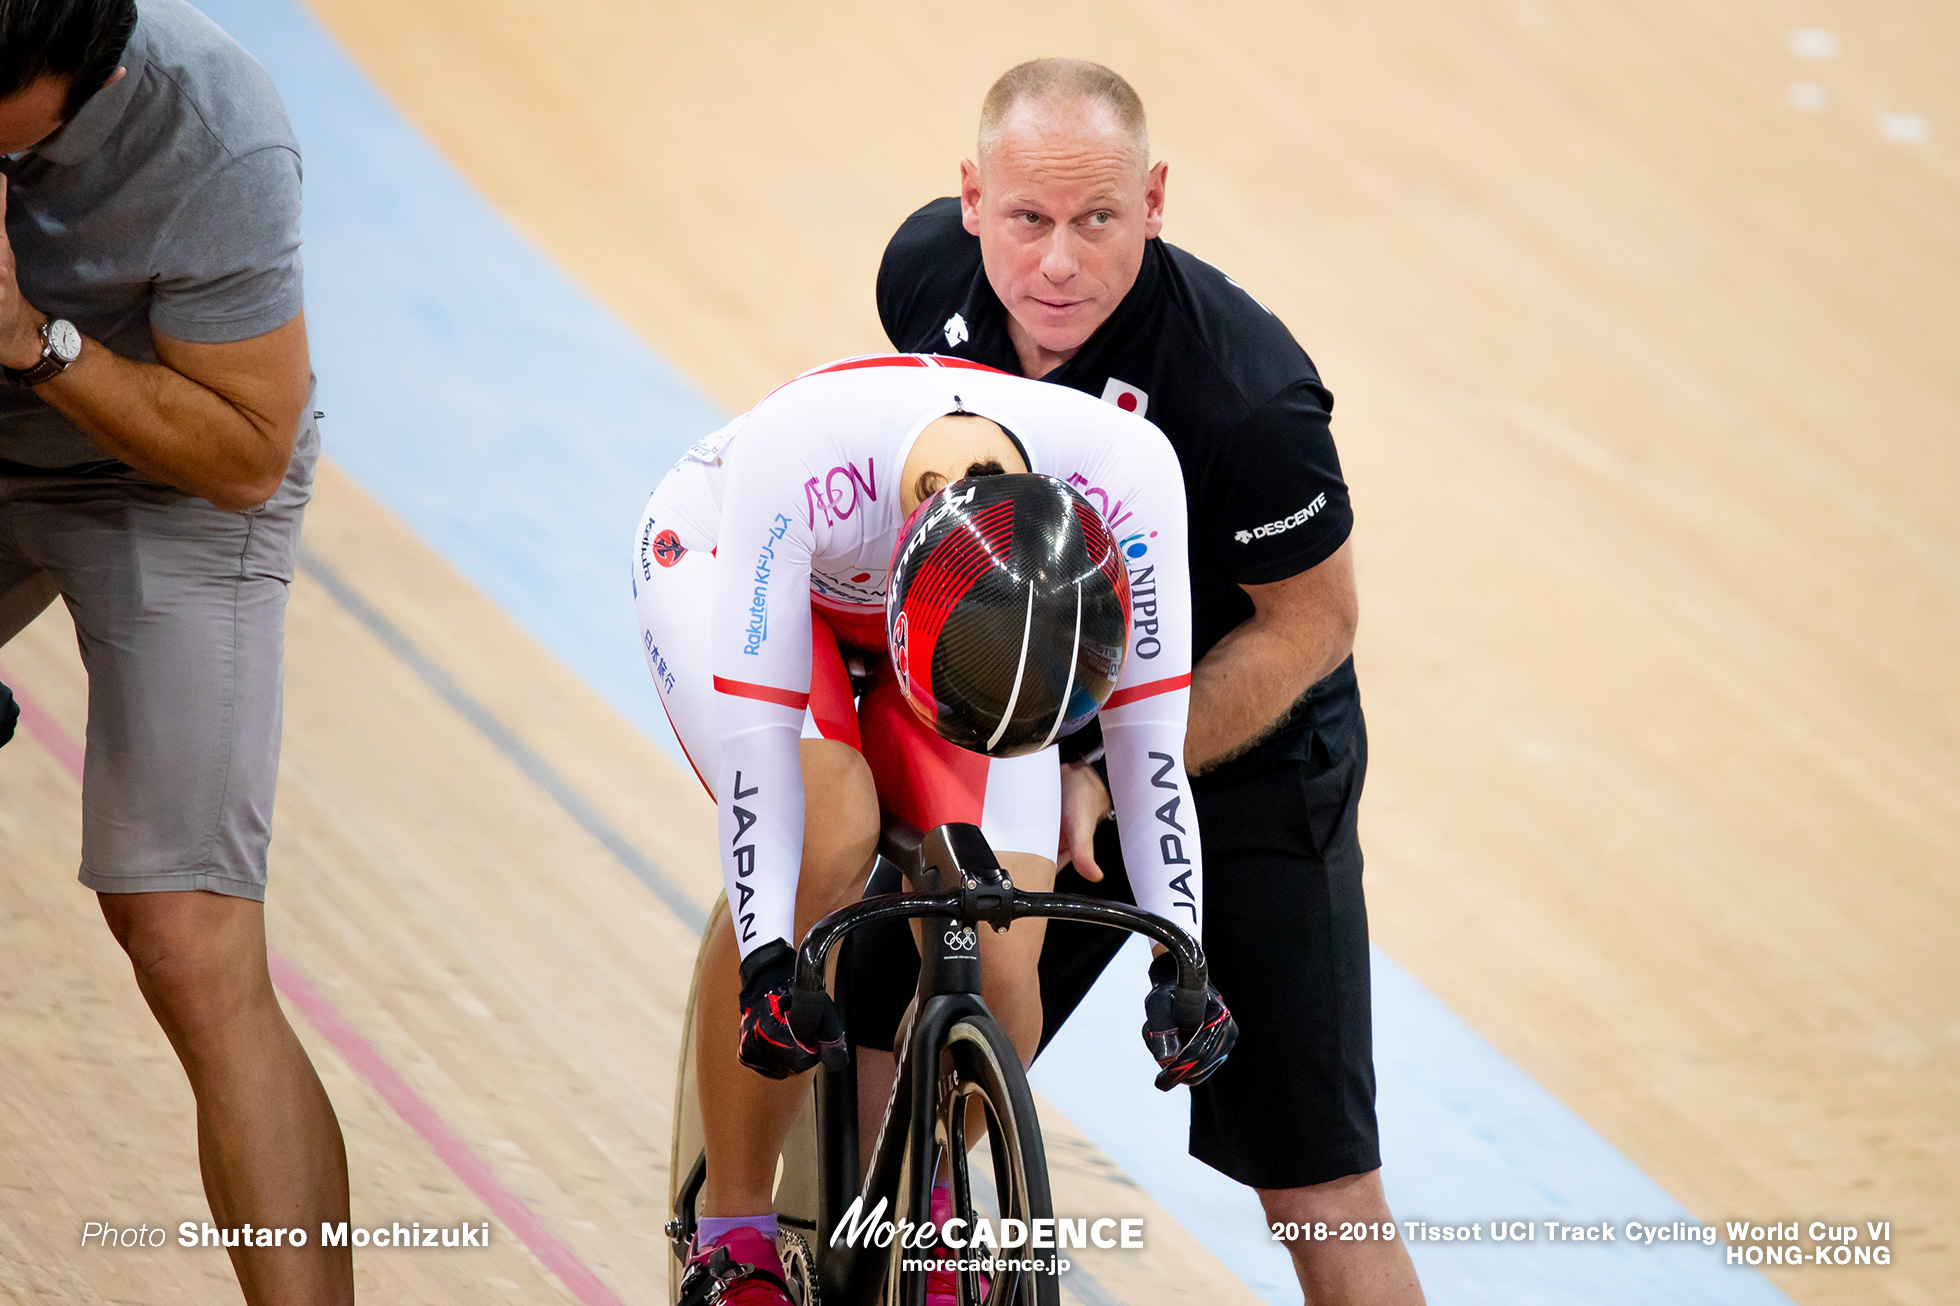 Final / Women's Keirin / Track Cycling World Cup VI / Hong-Kong